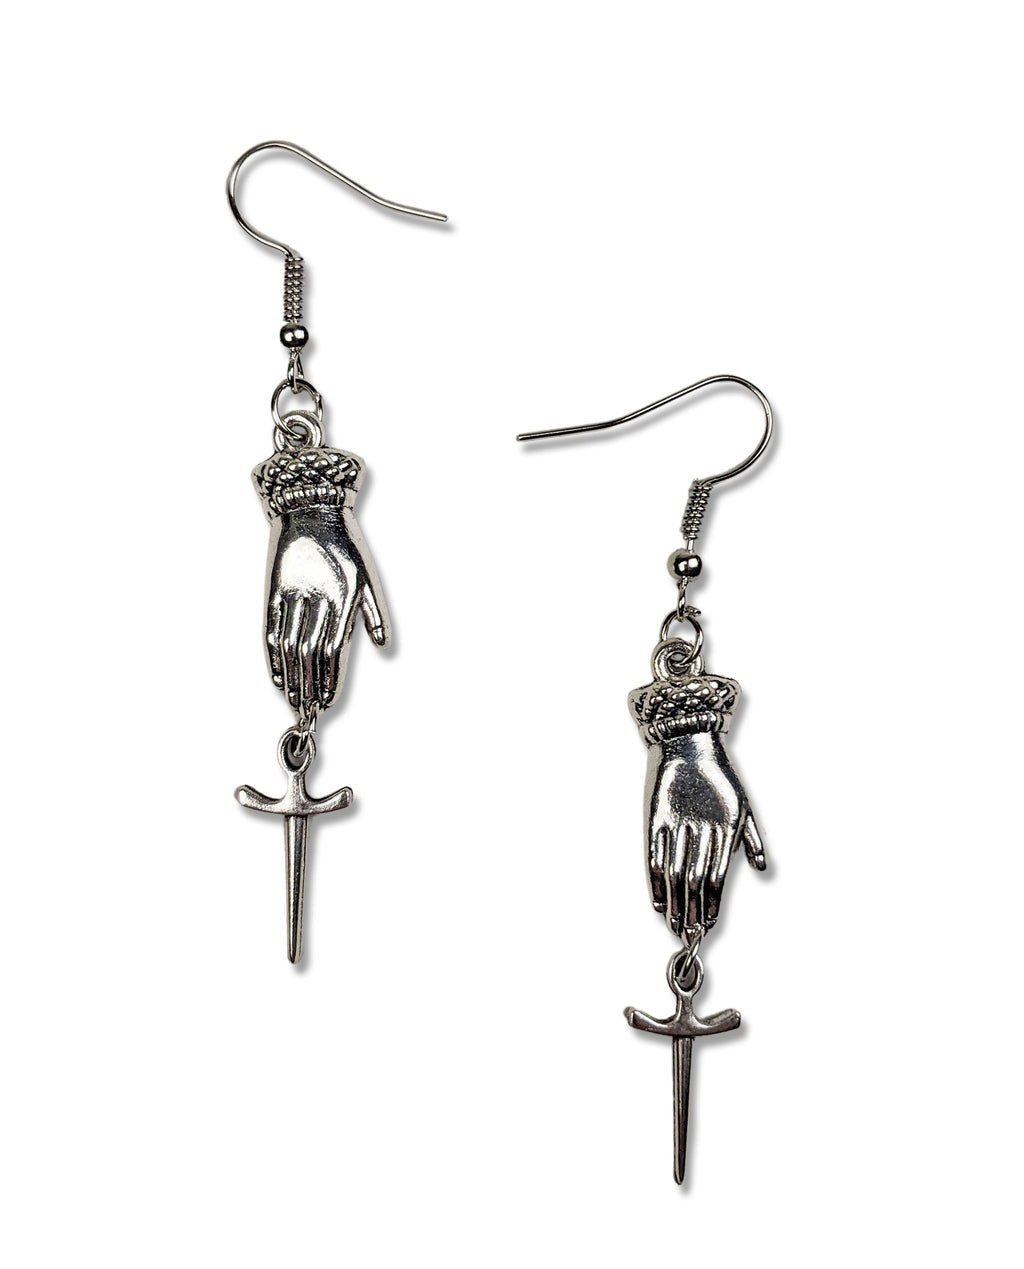 """Abby"" Silver-tone Hand and Dagger Earrings"